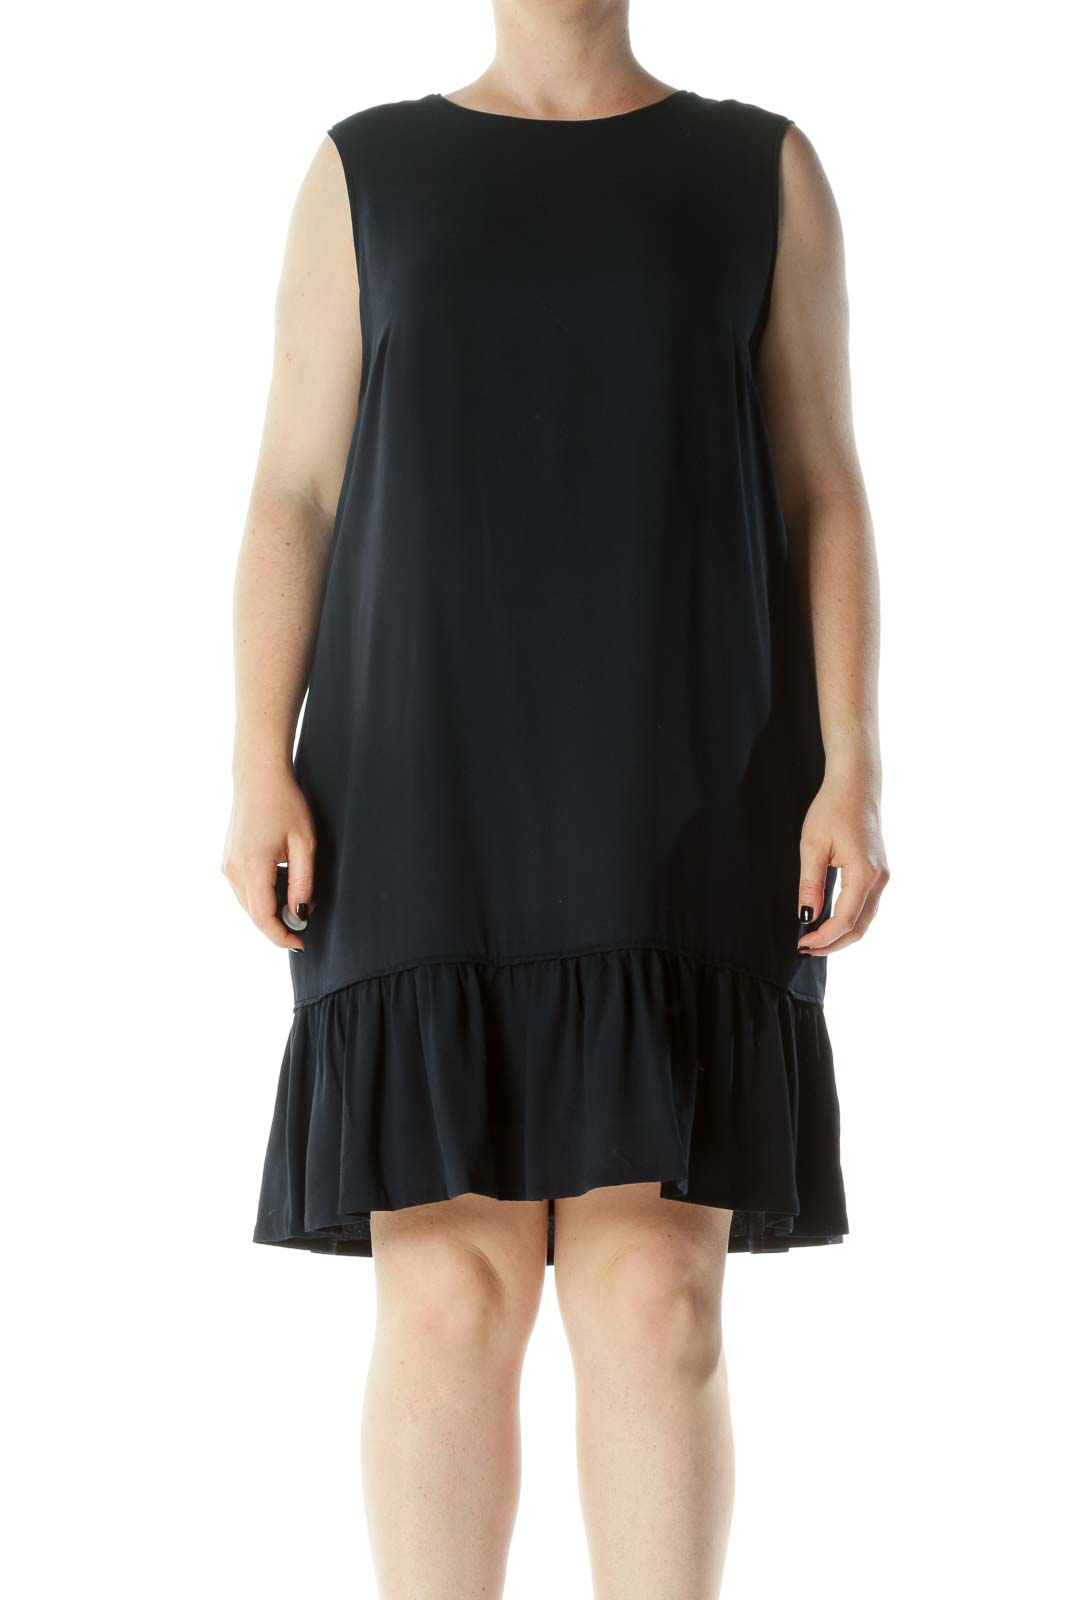 Navy Blue Round Neck Sleeveless Pocketed Flared Detail Dress Front